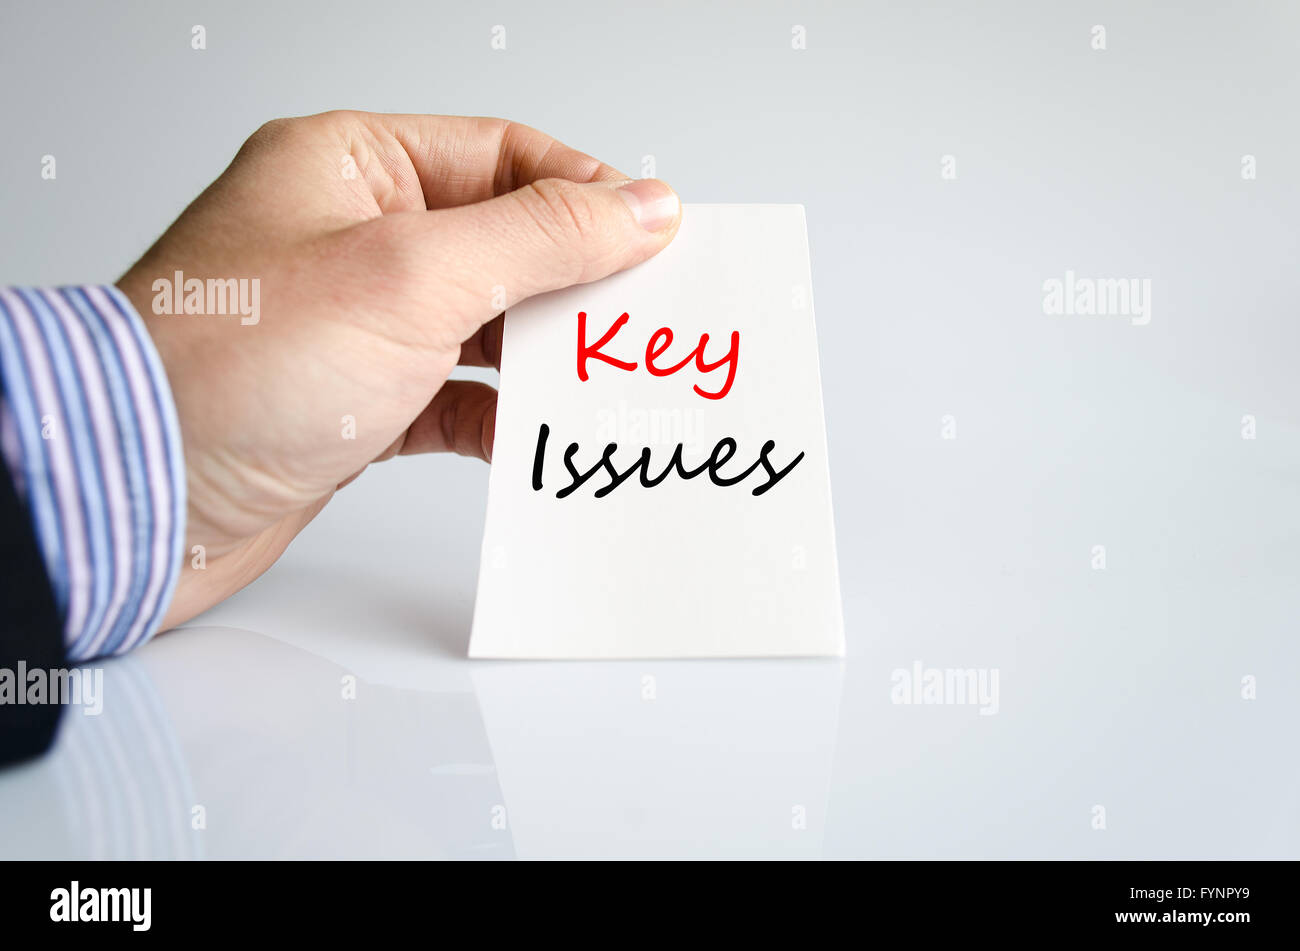 Key issues Text Concept - Stock Image